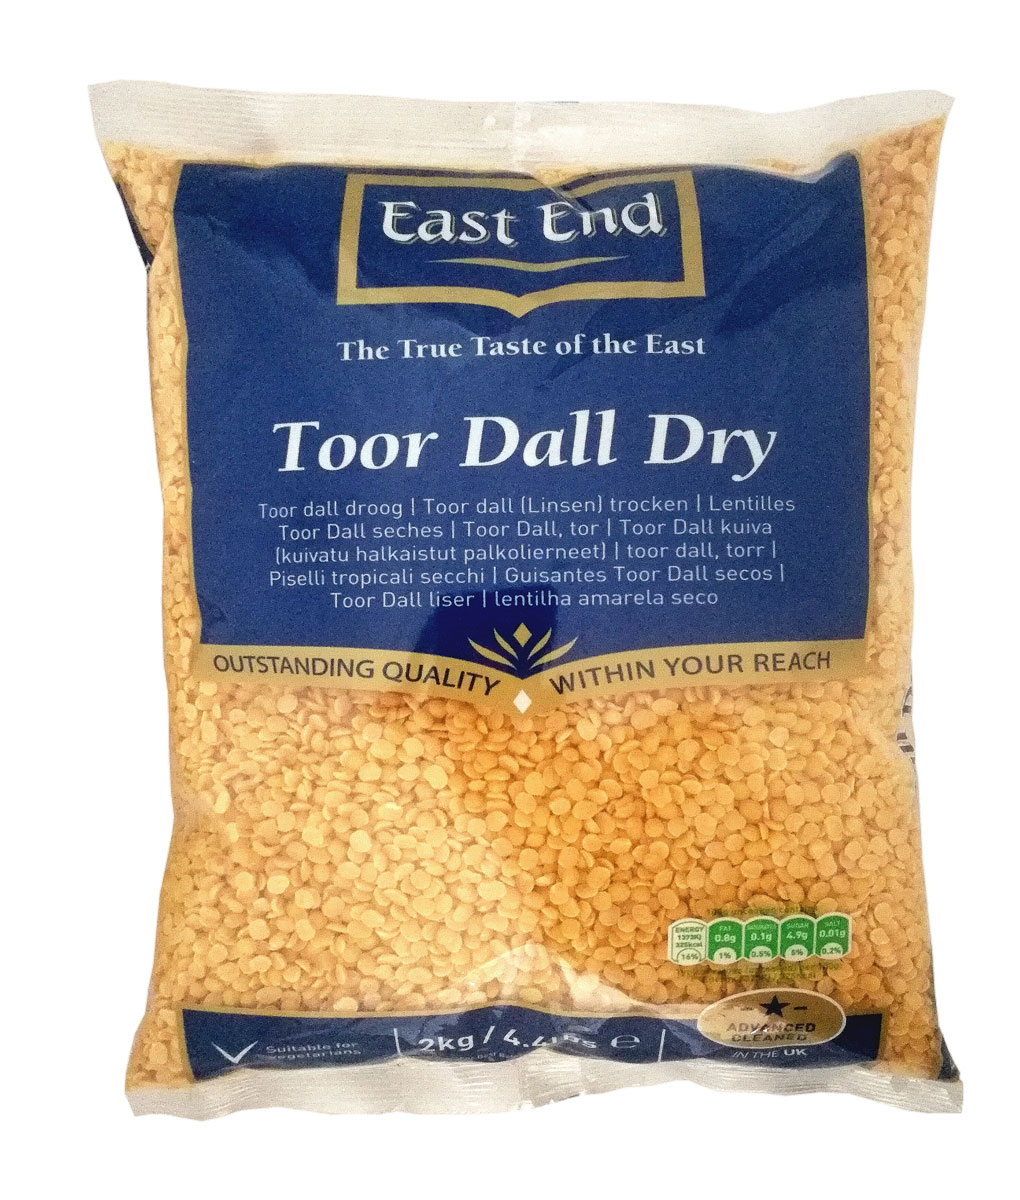 EastEnd Toor Dall Dry